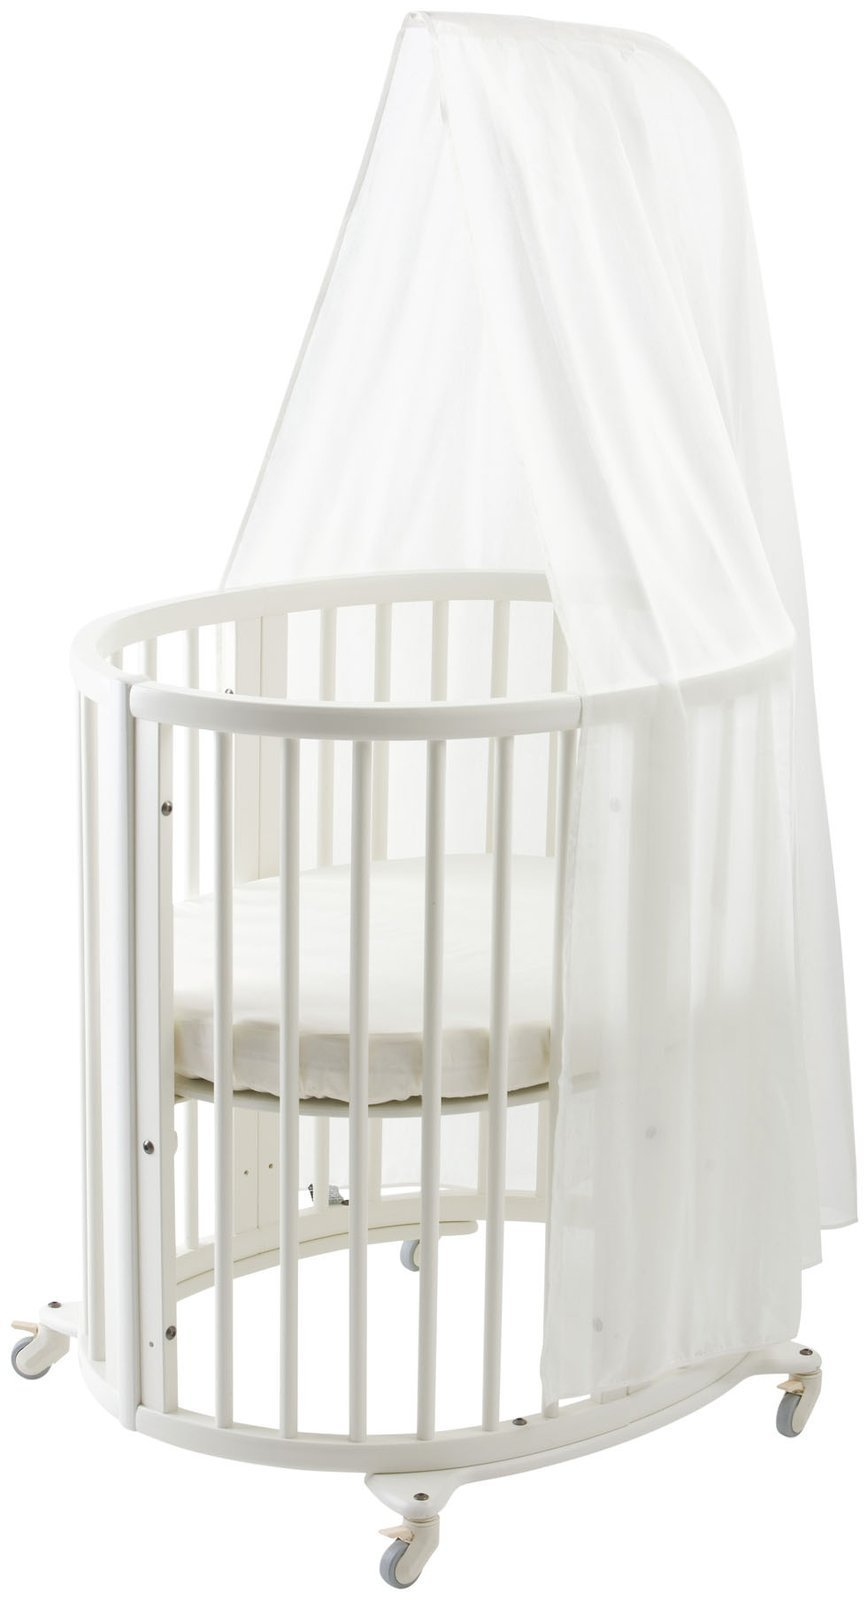 stokke sleepi canopy white crib insect netting baby. Black Bedroom Furniture Sets. Home Design Ideas